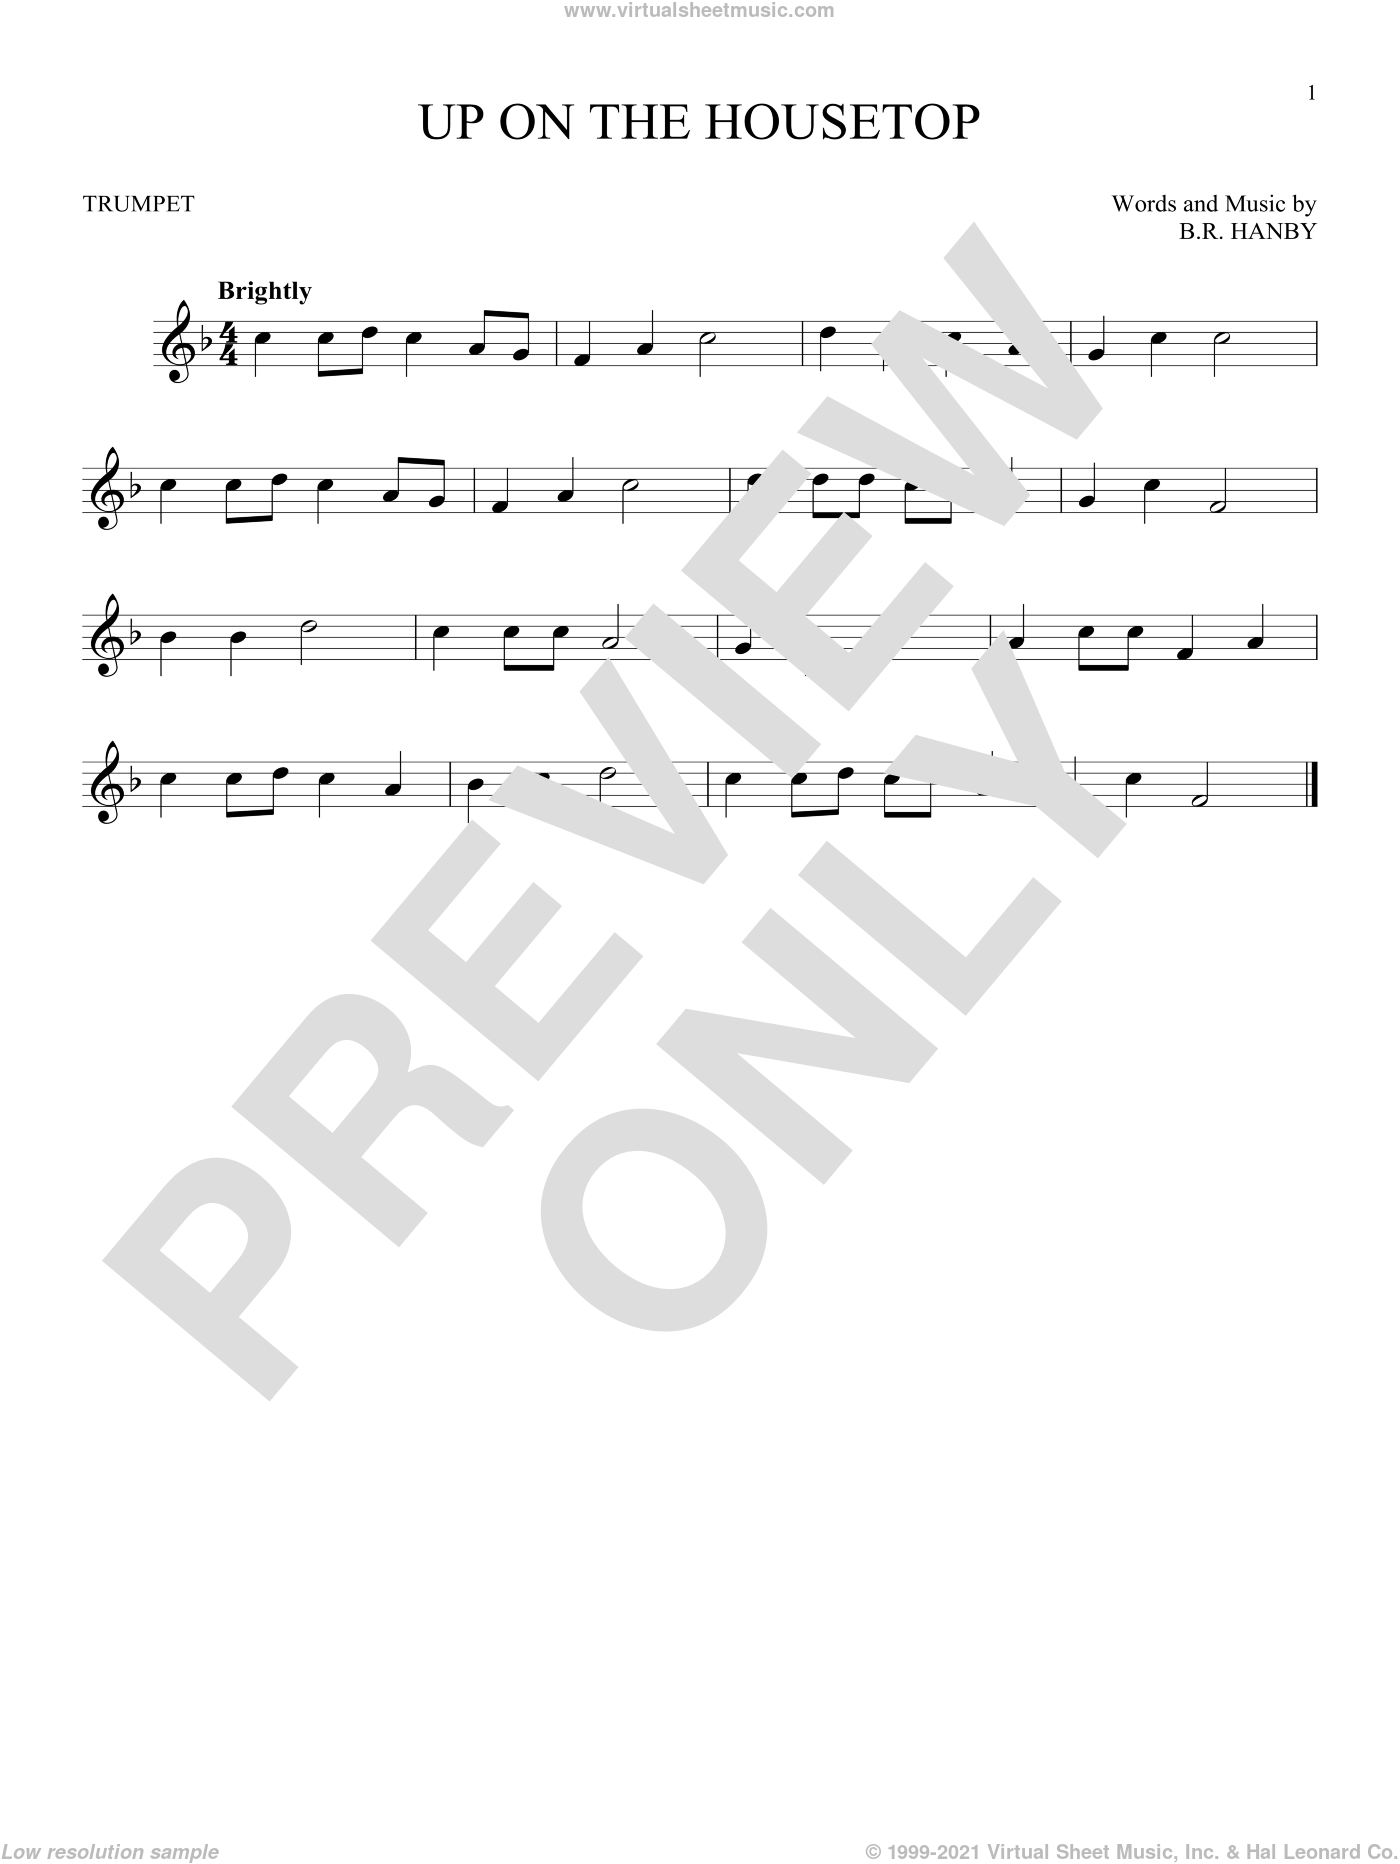 Up On The Housetop sheet music for trumpet solo by Benjamin Hanby, intermediate skill level